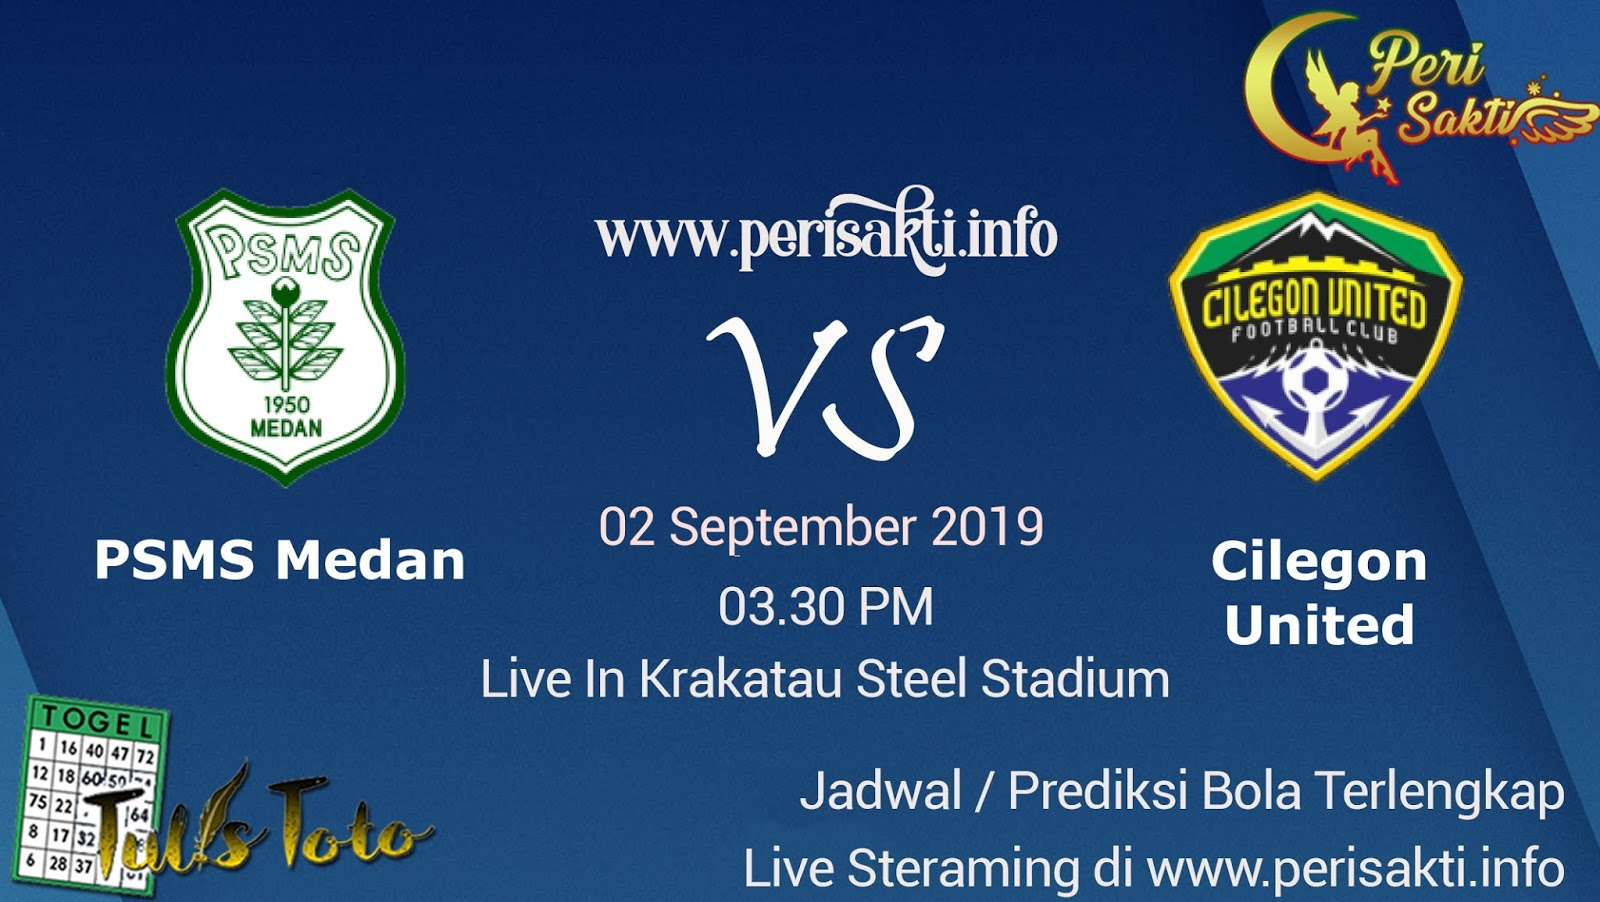 Prediksi Cilegon United vs PSMS Medan Liga 2 02 September 2019